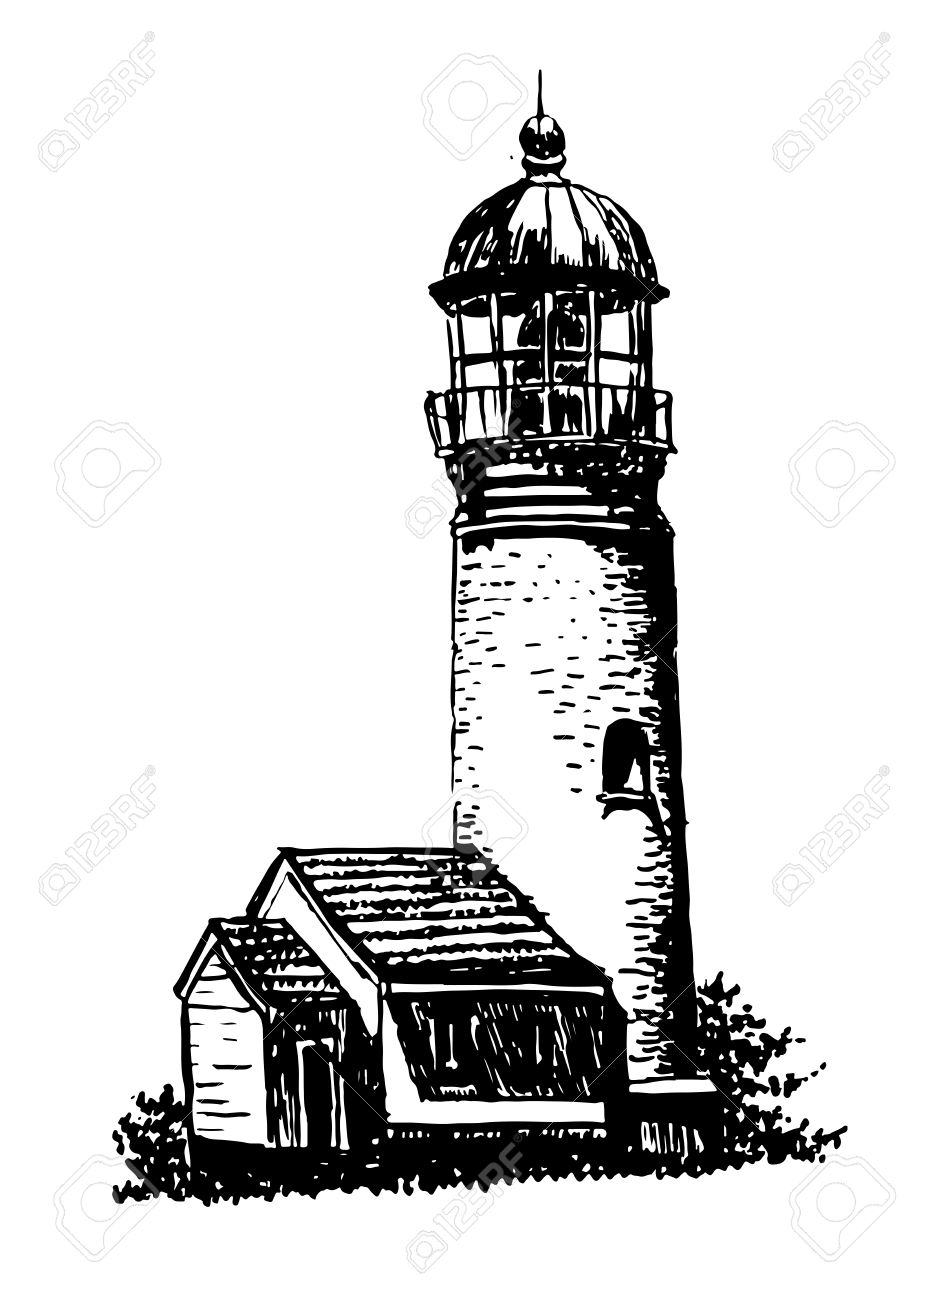 Drawing Old Lighthouse Sketch Illustration Royalty Free Cliparts.